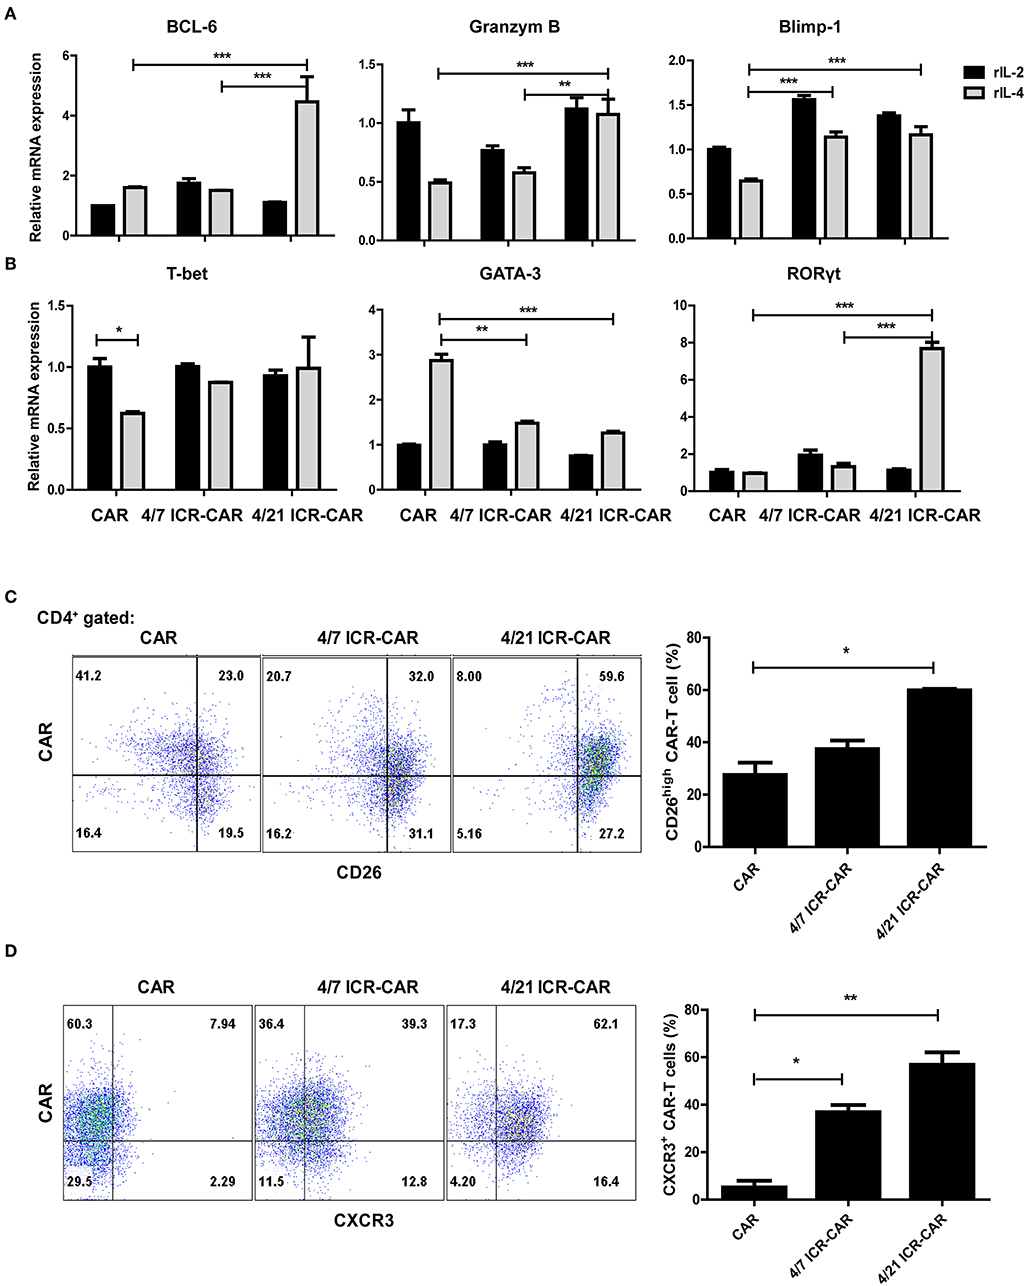 Frontiers | An IL-4/21 Inverted Cytokine Receptor Improving